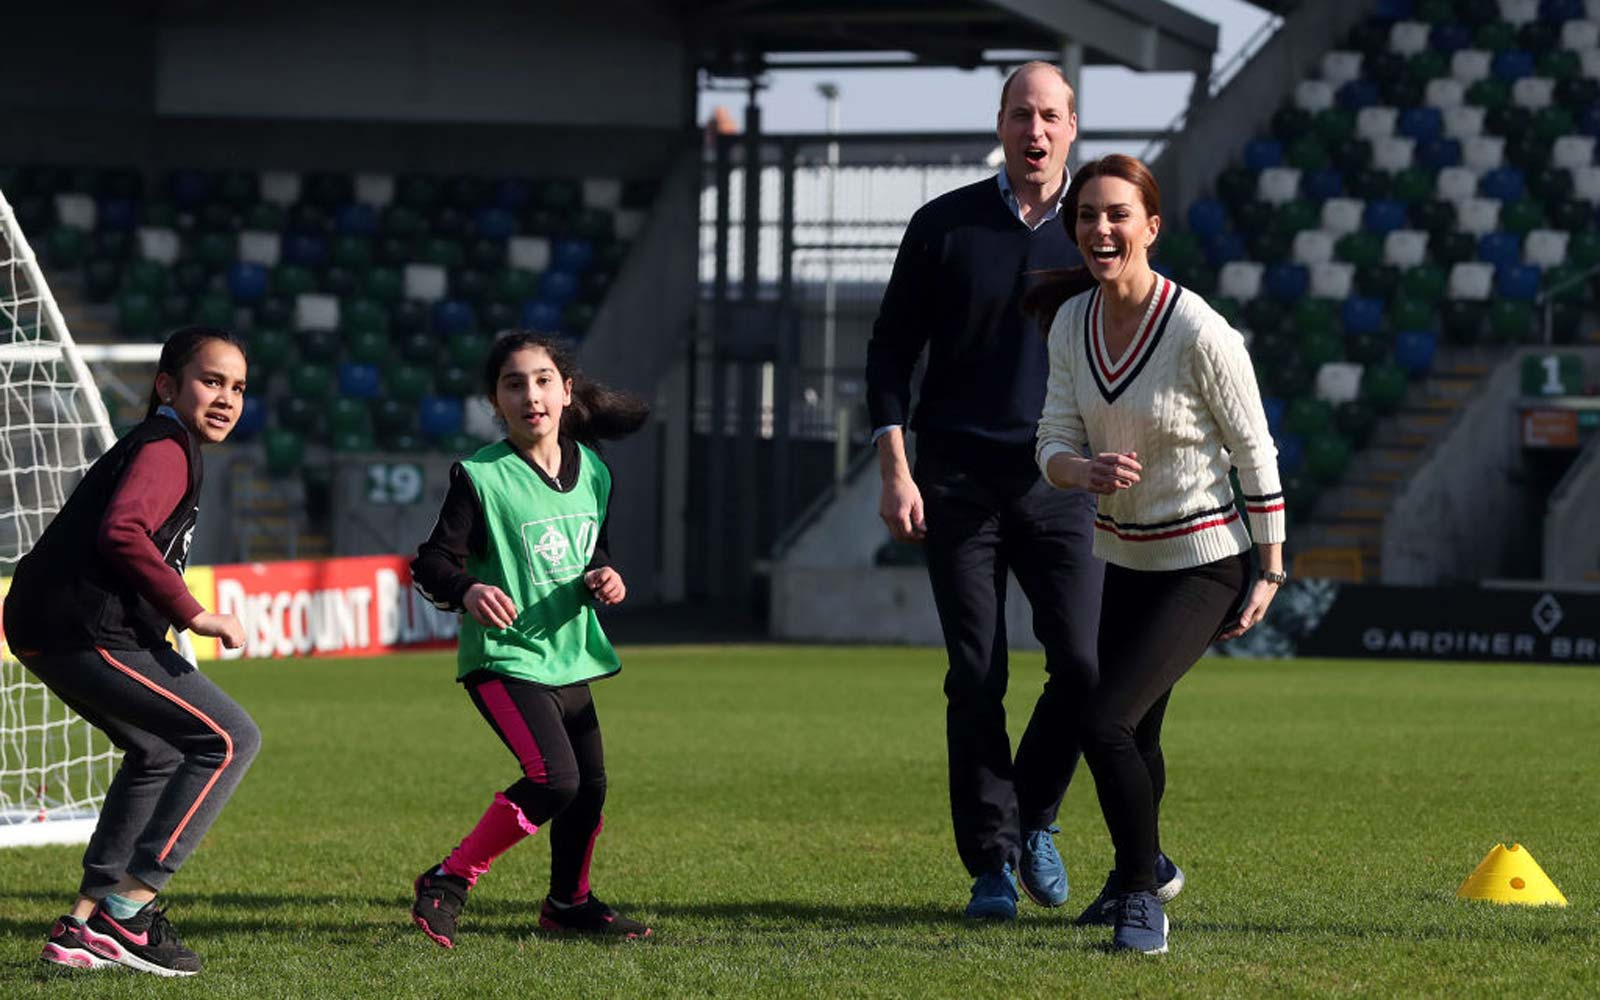 Kate Middleton Switches Into Sneakers to Hit the Field in Northern Ireland